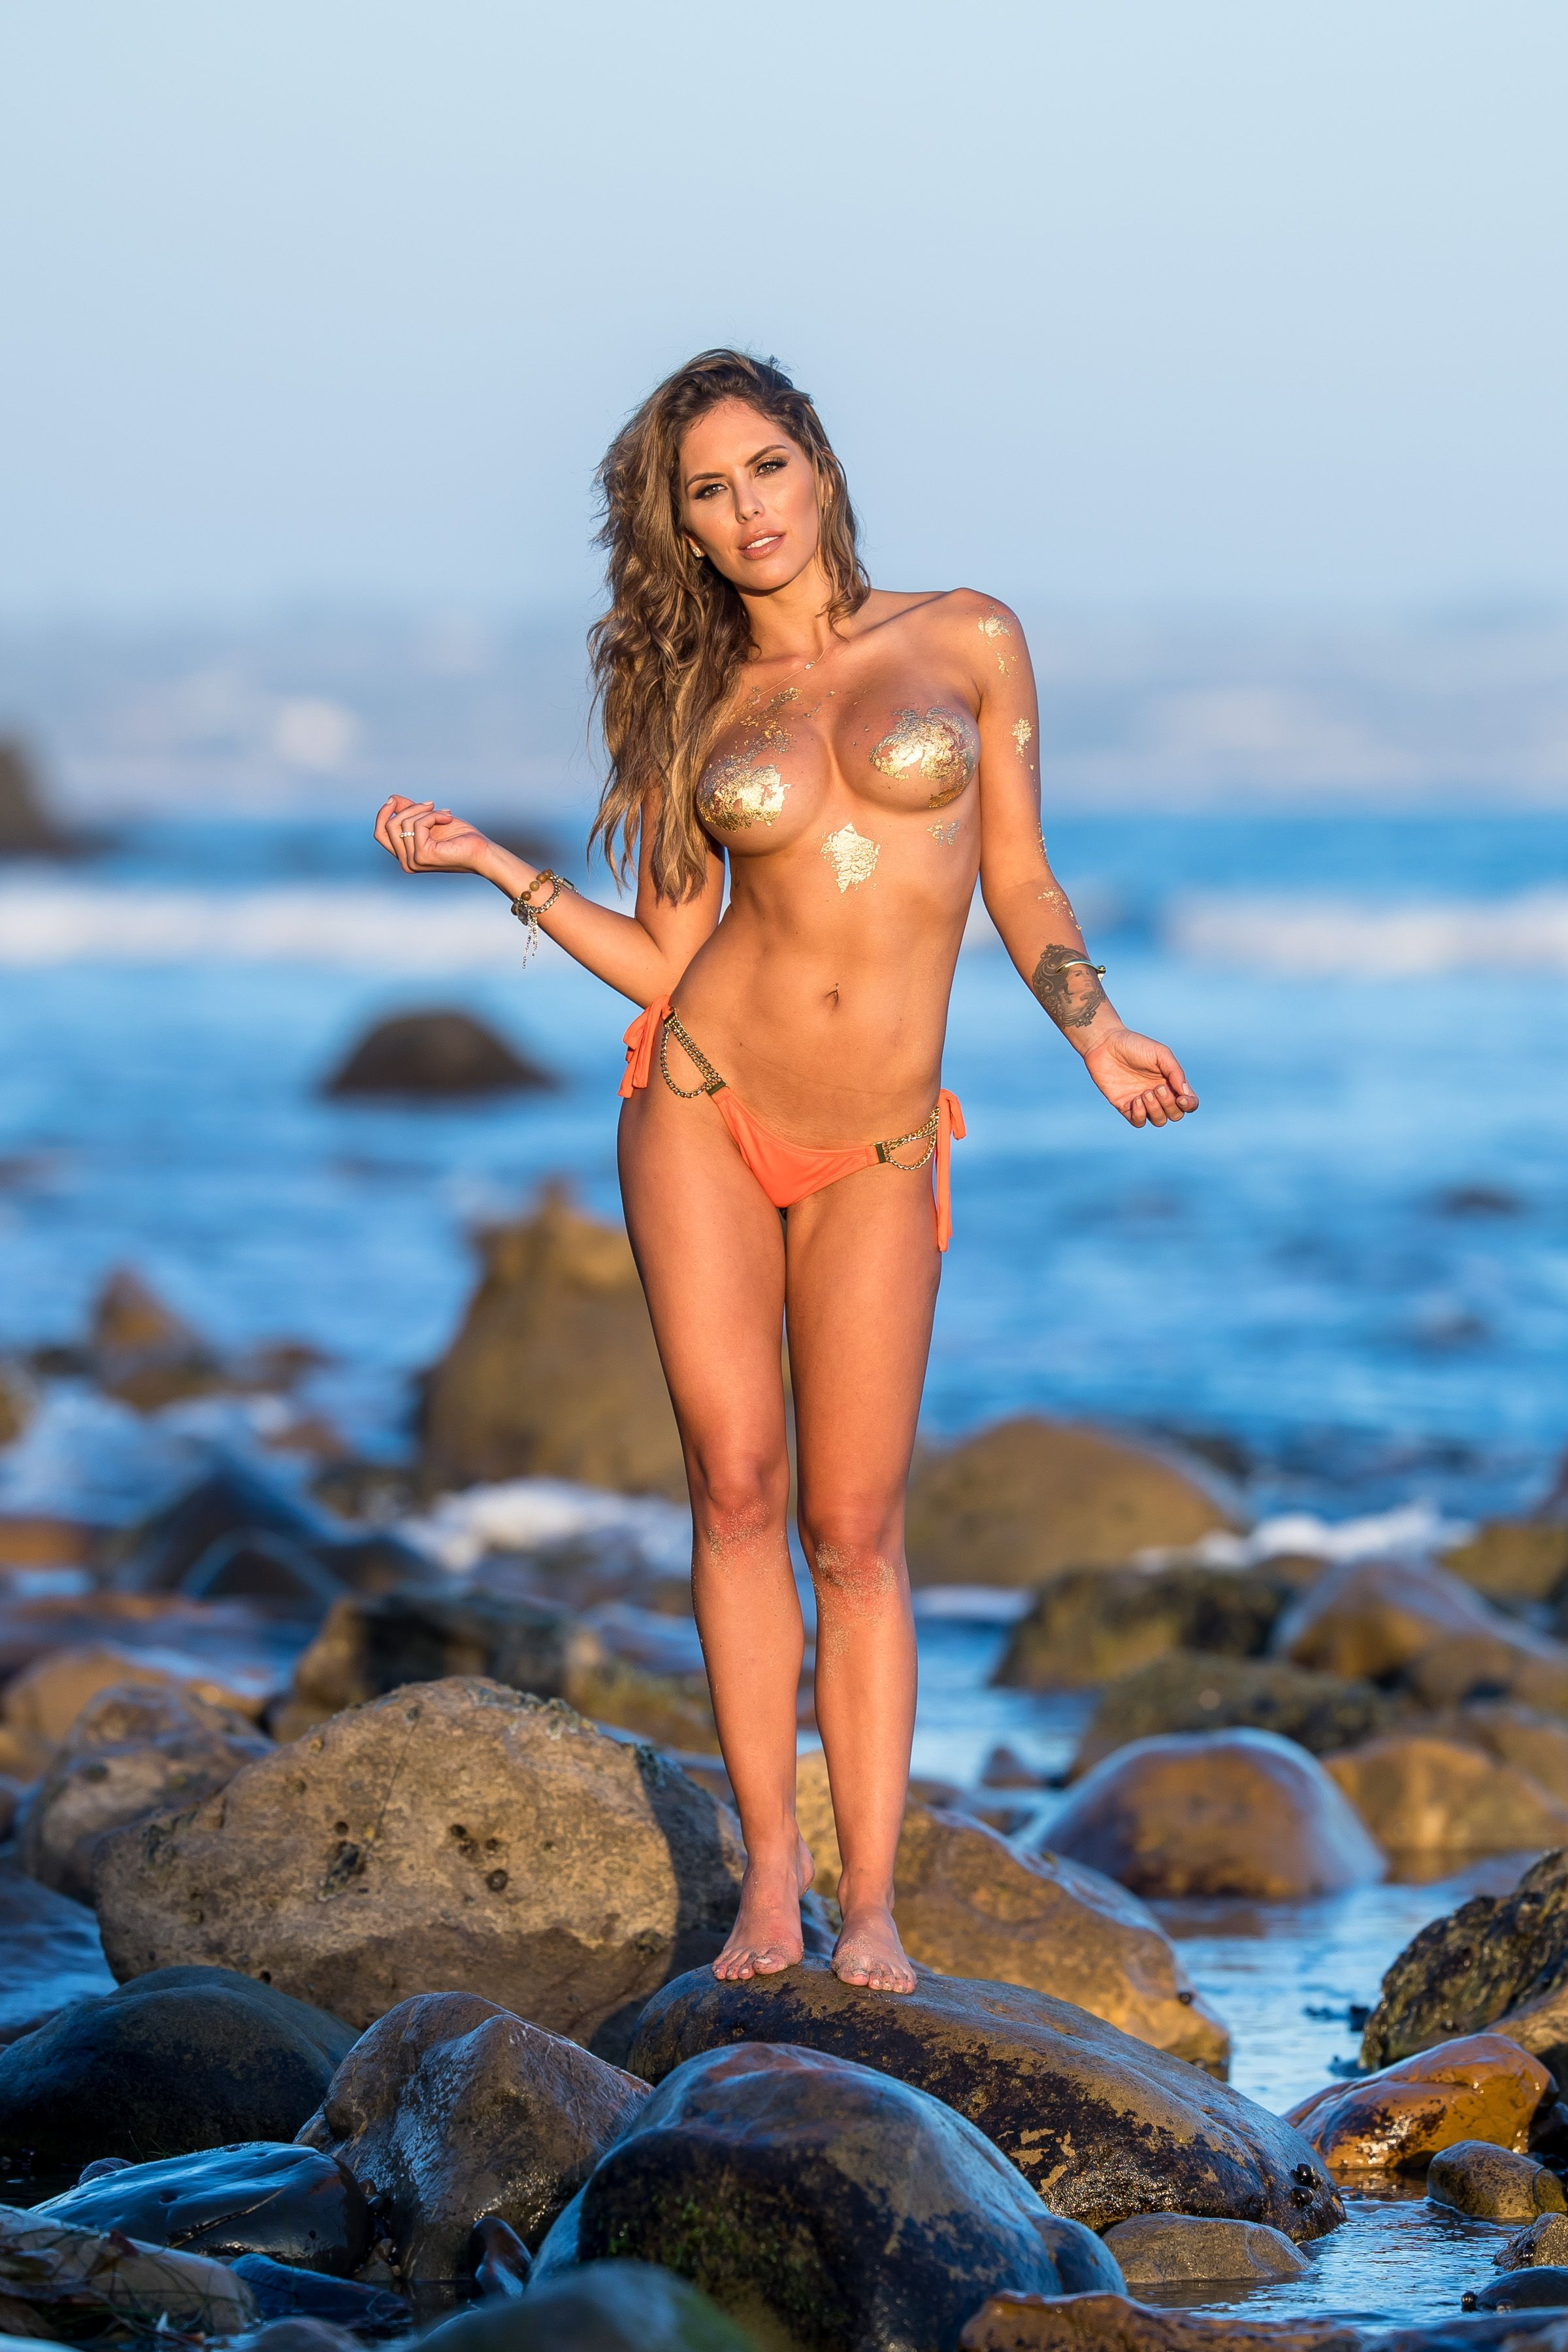 Brittney-Palmer-Sexy-Topless-39-thefappeningblog.com_.jpg